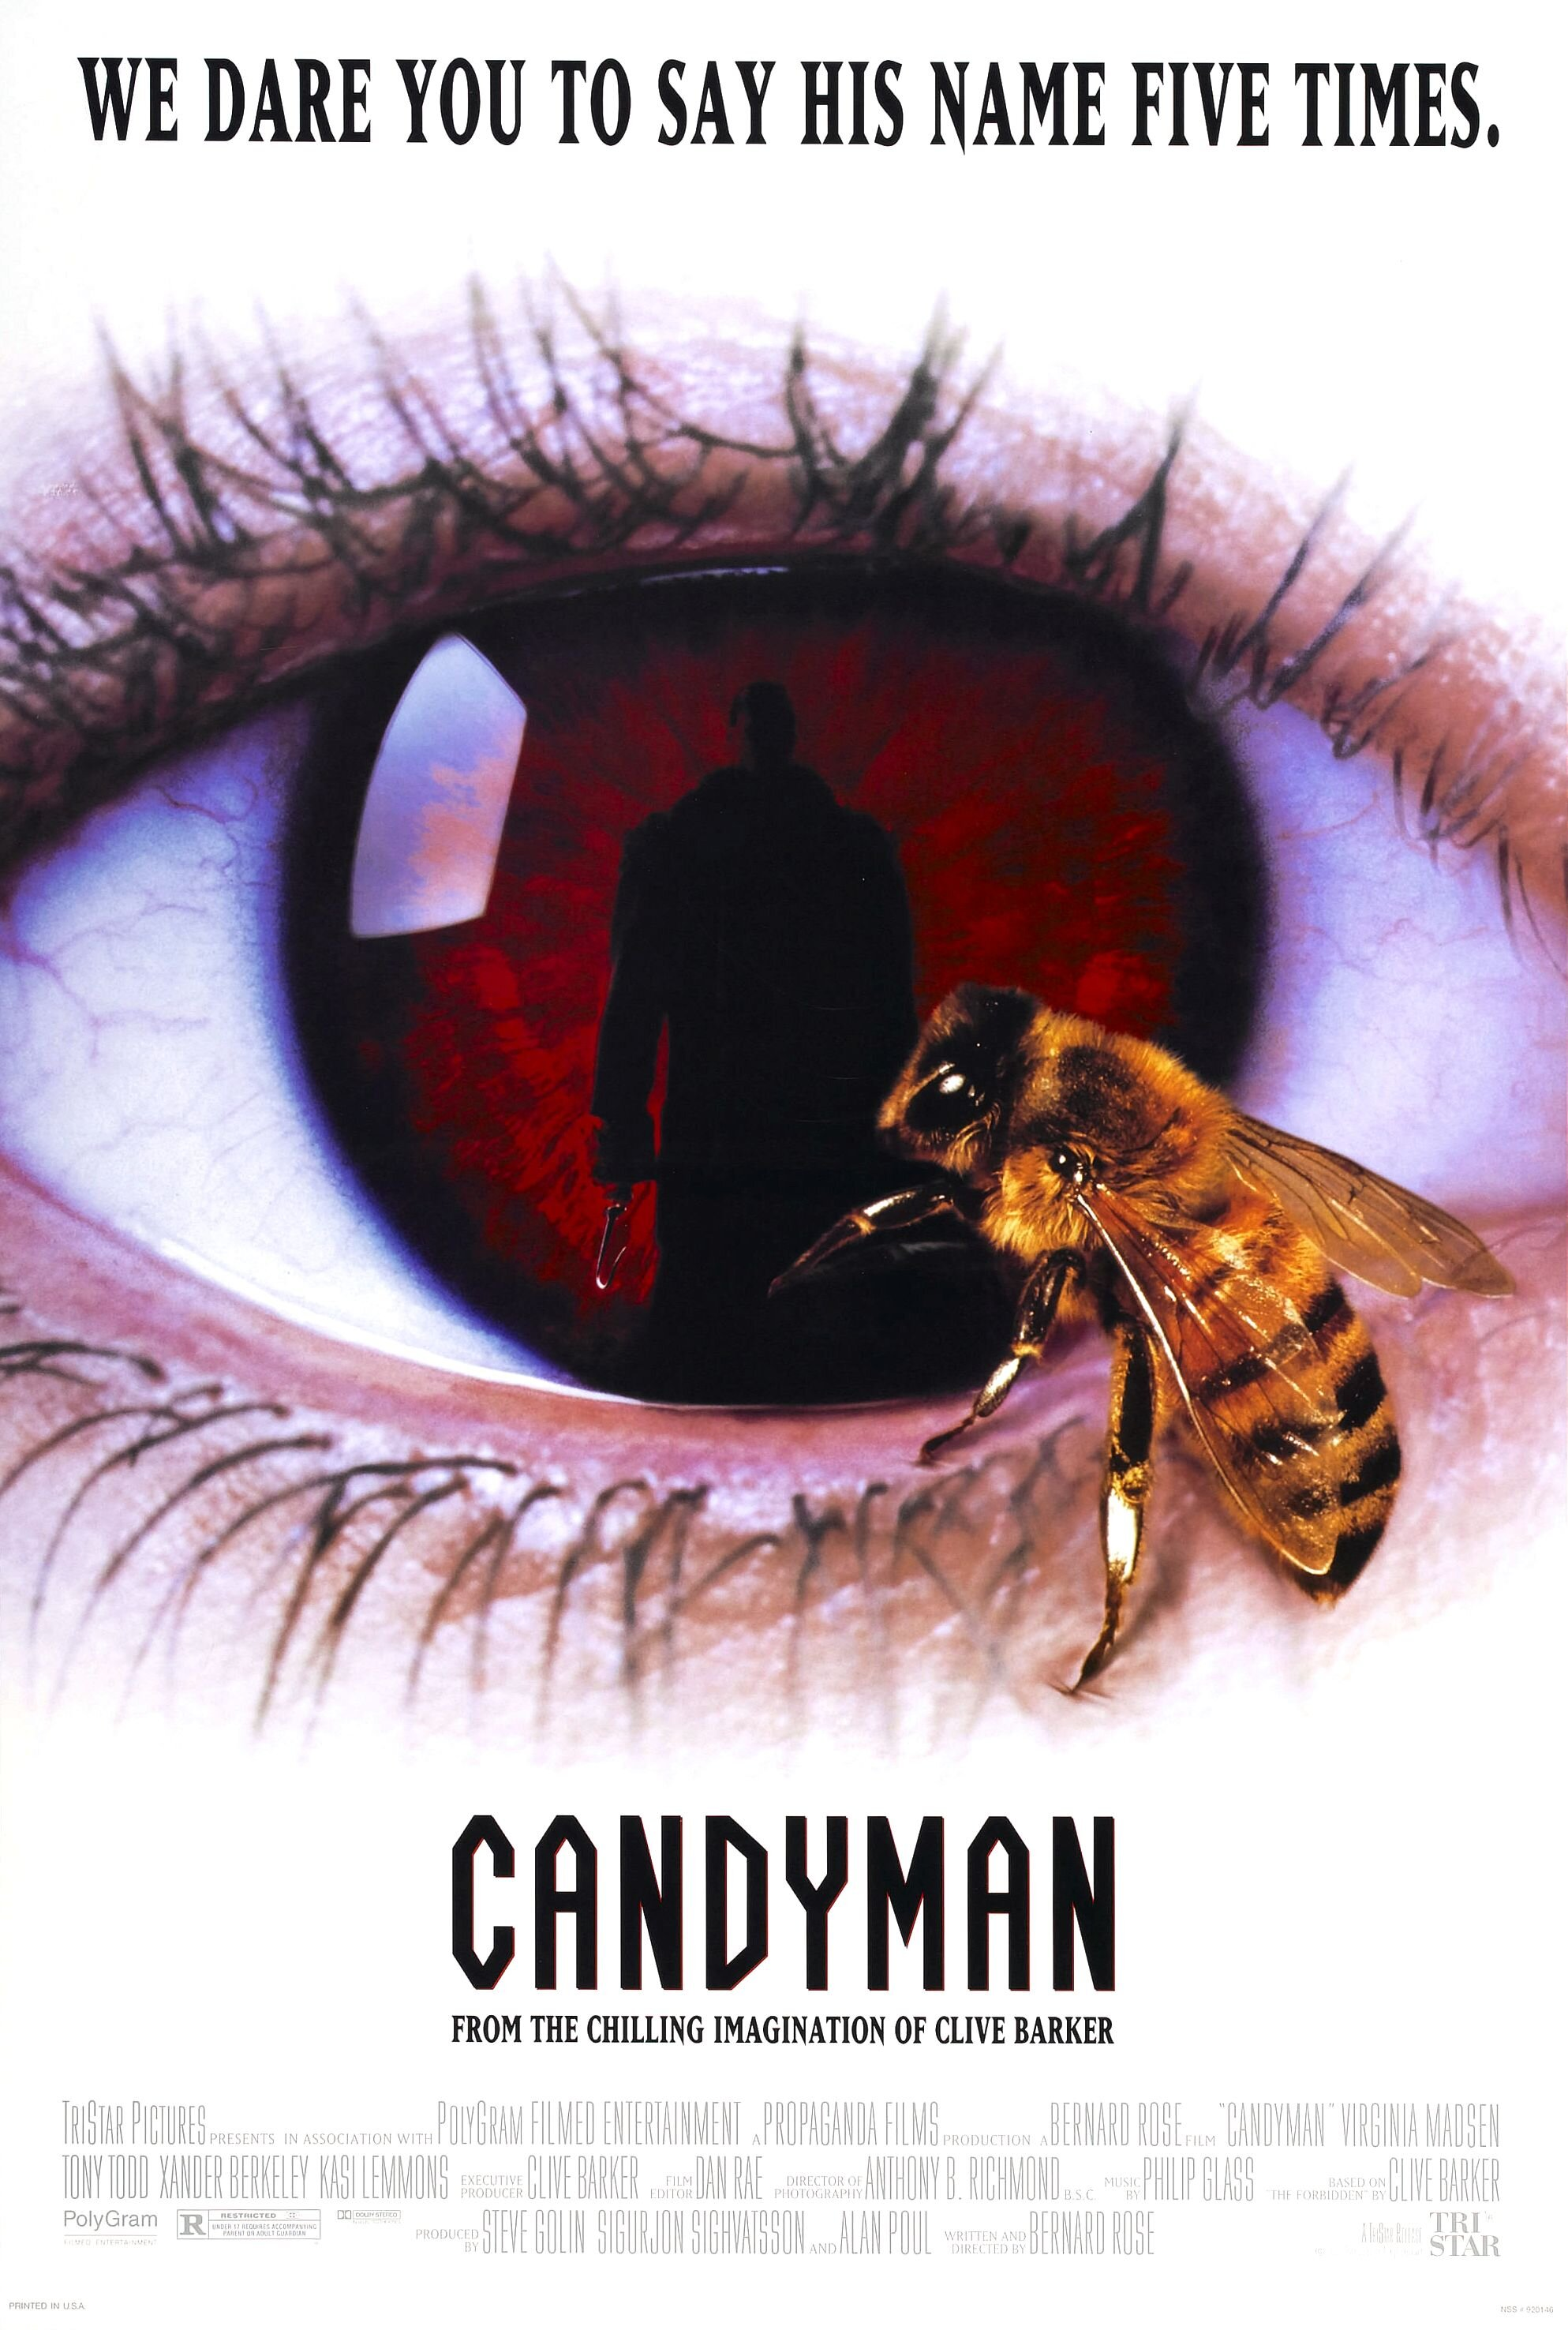 Candyman - October 11th, 2019